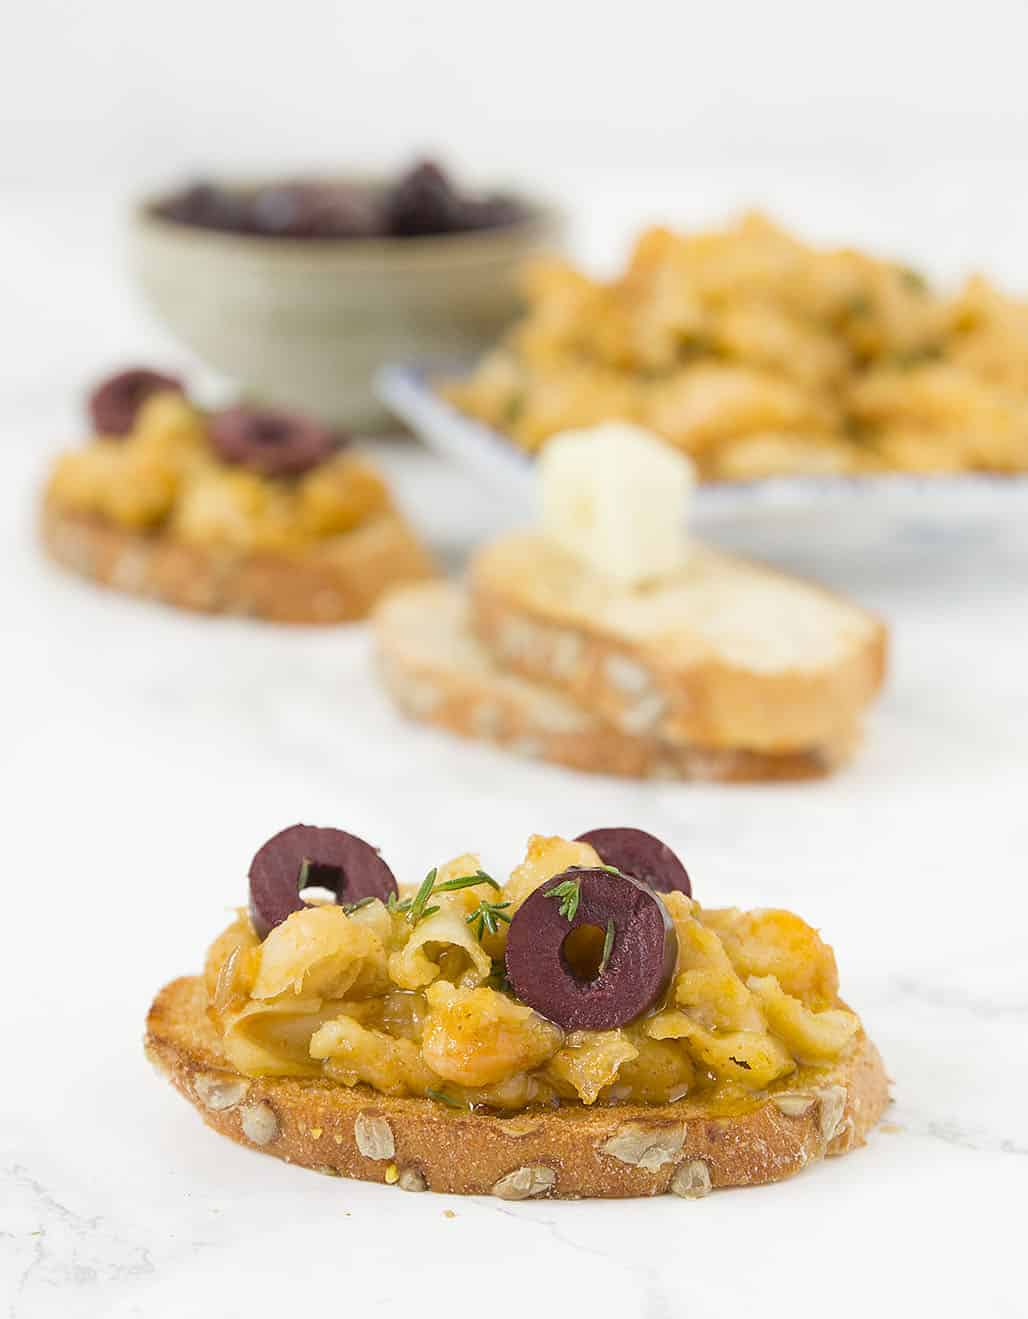 These smoky beans on toast are packed with flavors, crunchy and garlicky, healthy and inexpensive, perfect to please a crowd.